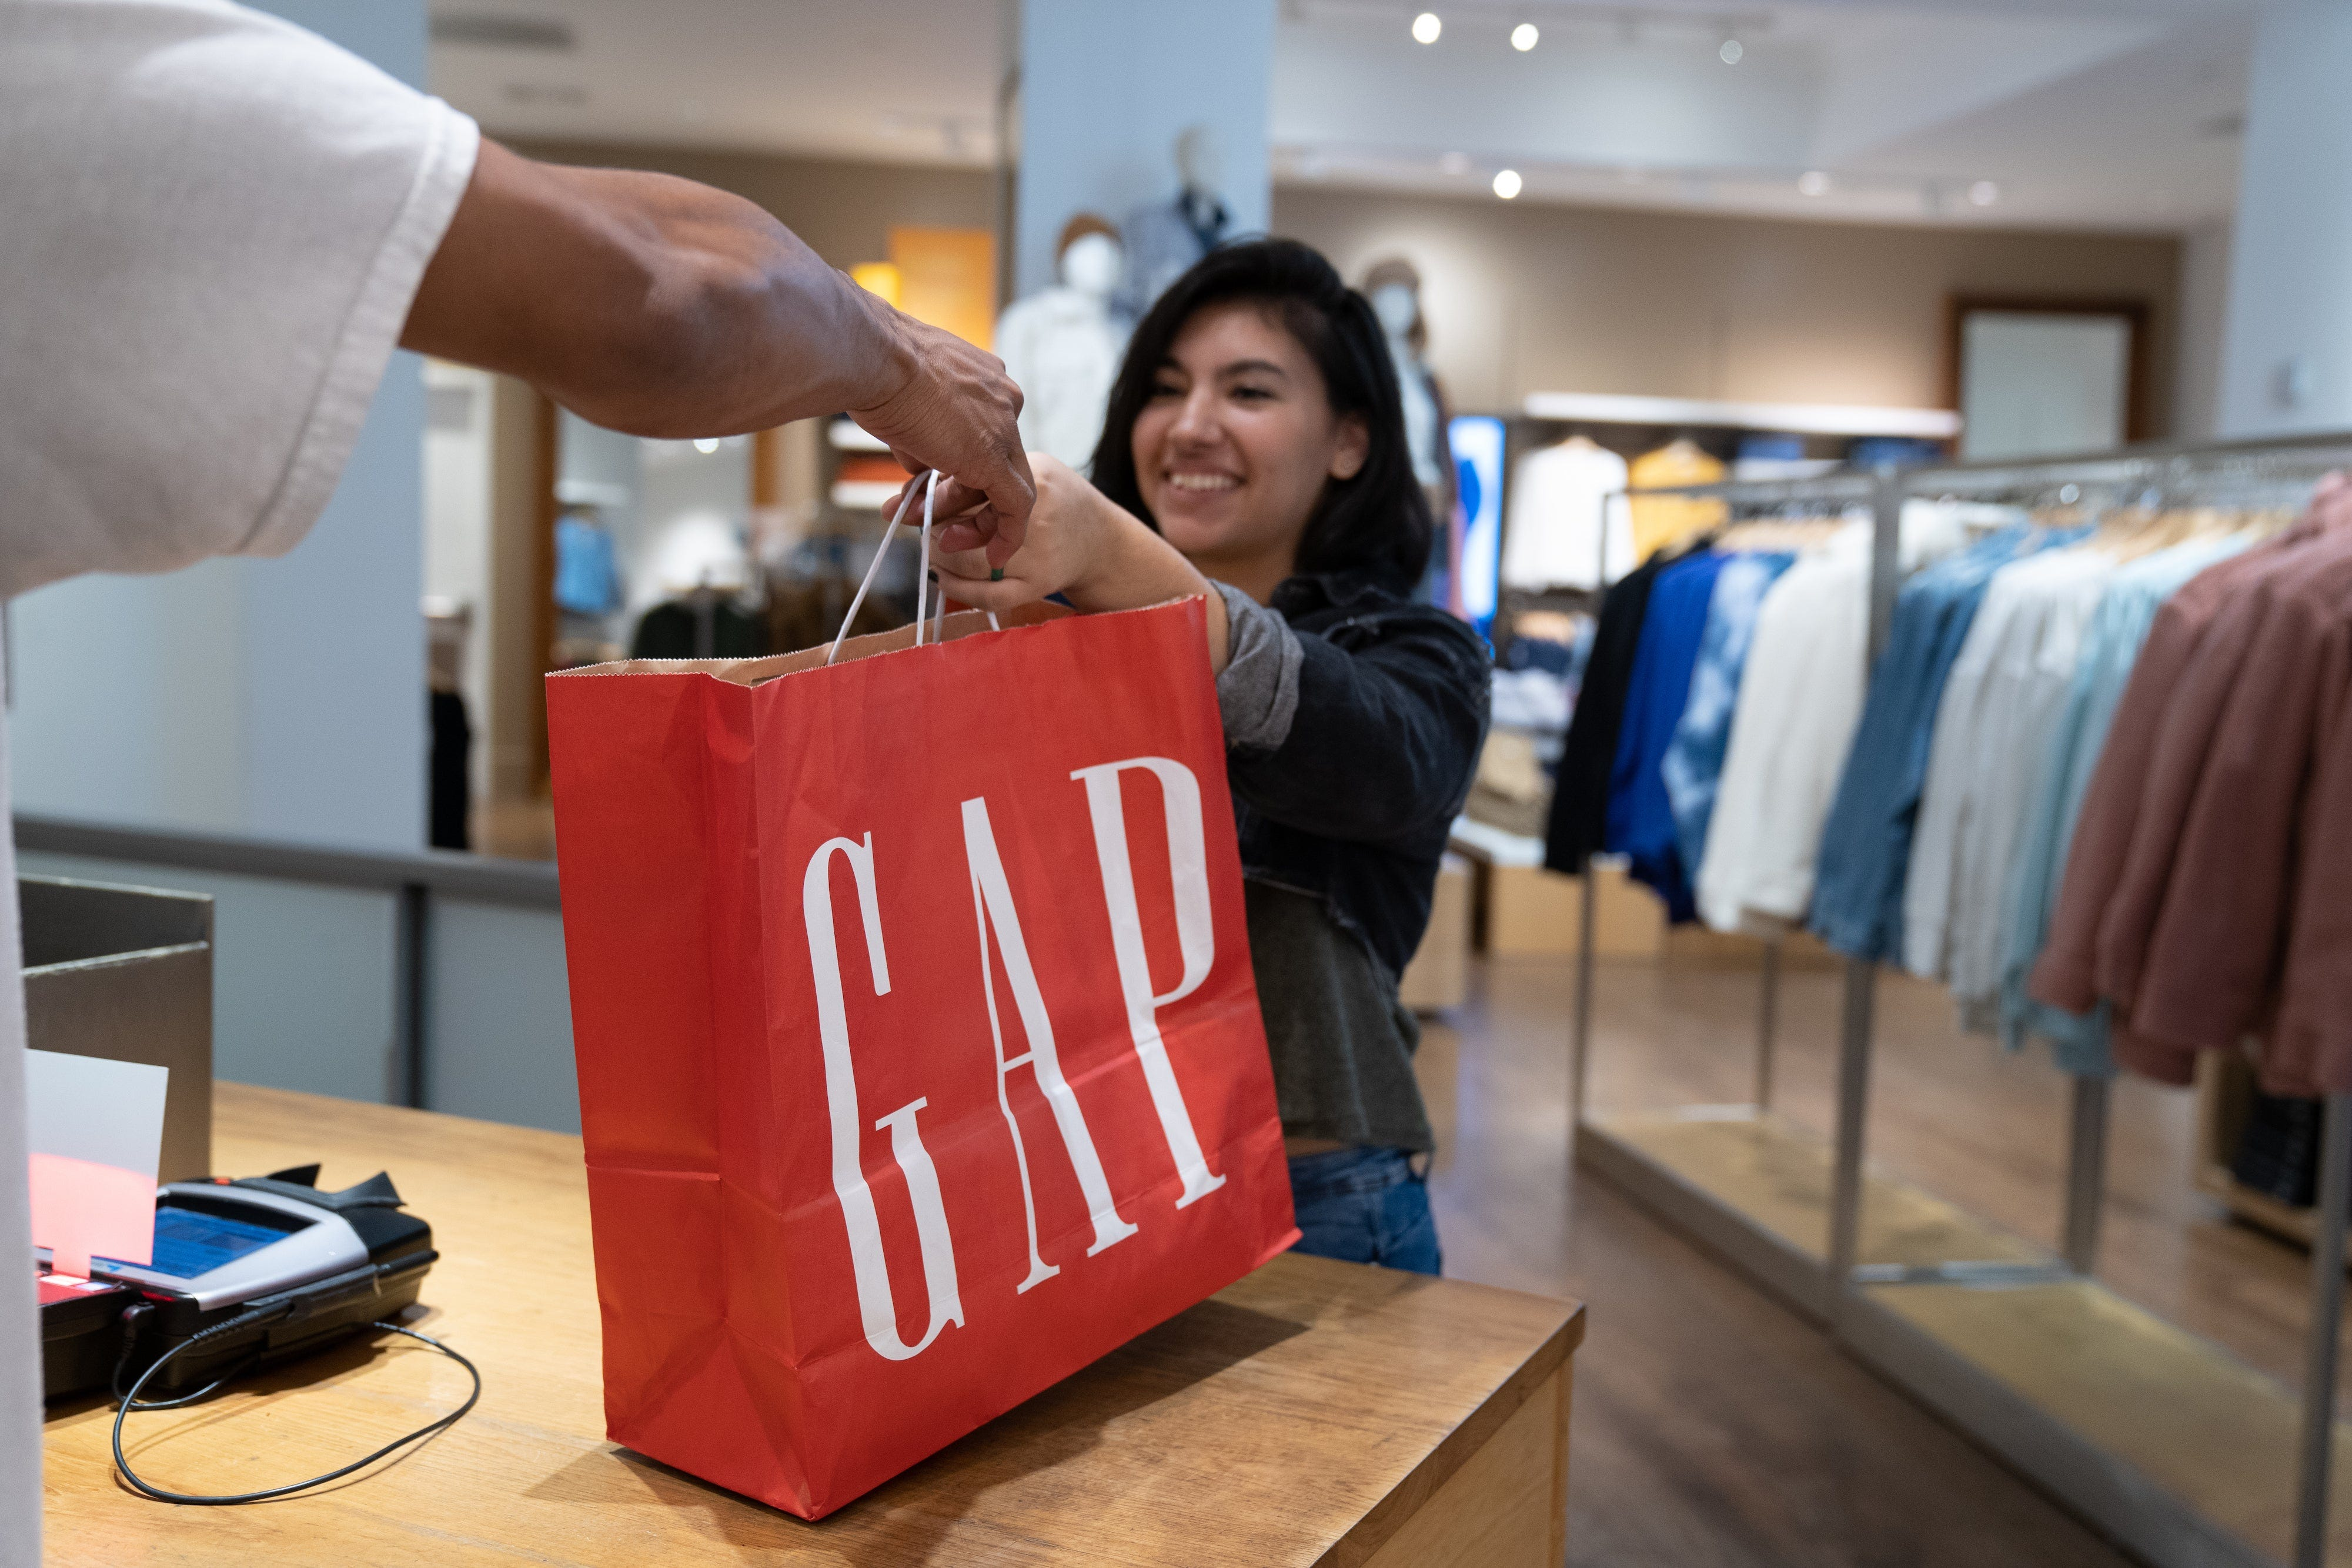 Gap and Kanye West team up to bring